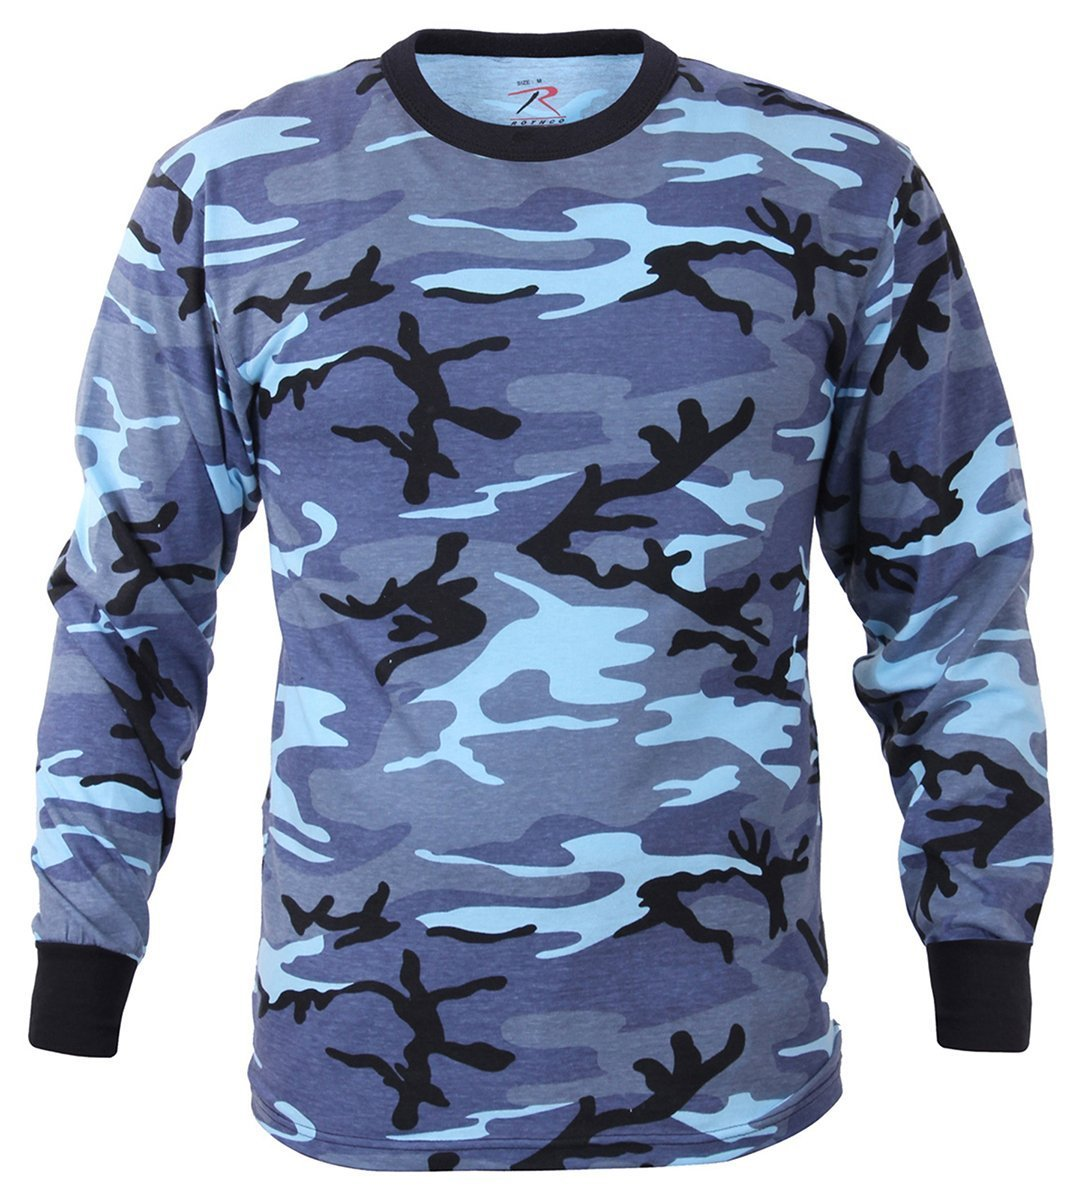 Rothco Long Sleeve T-Shirt, Sky Blue Camo, 2X RSR Group Inc 67771